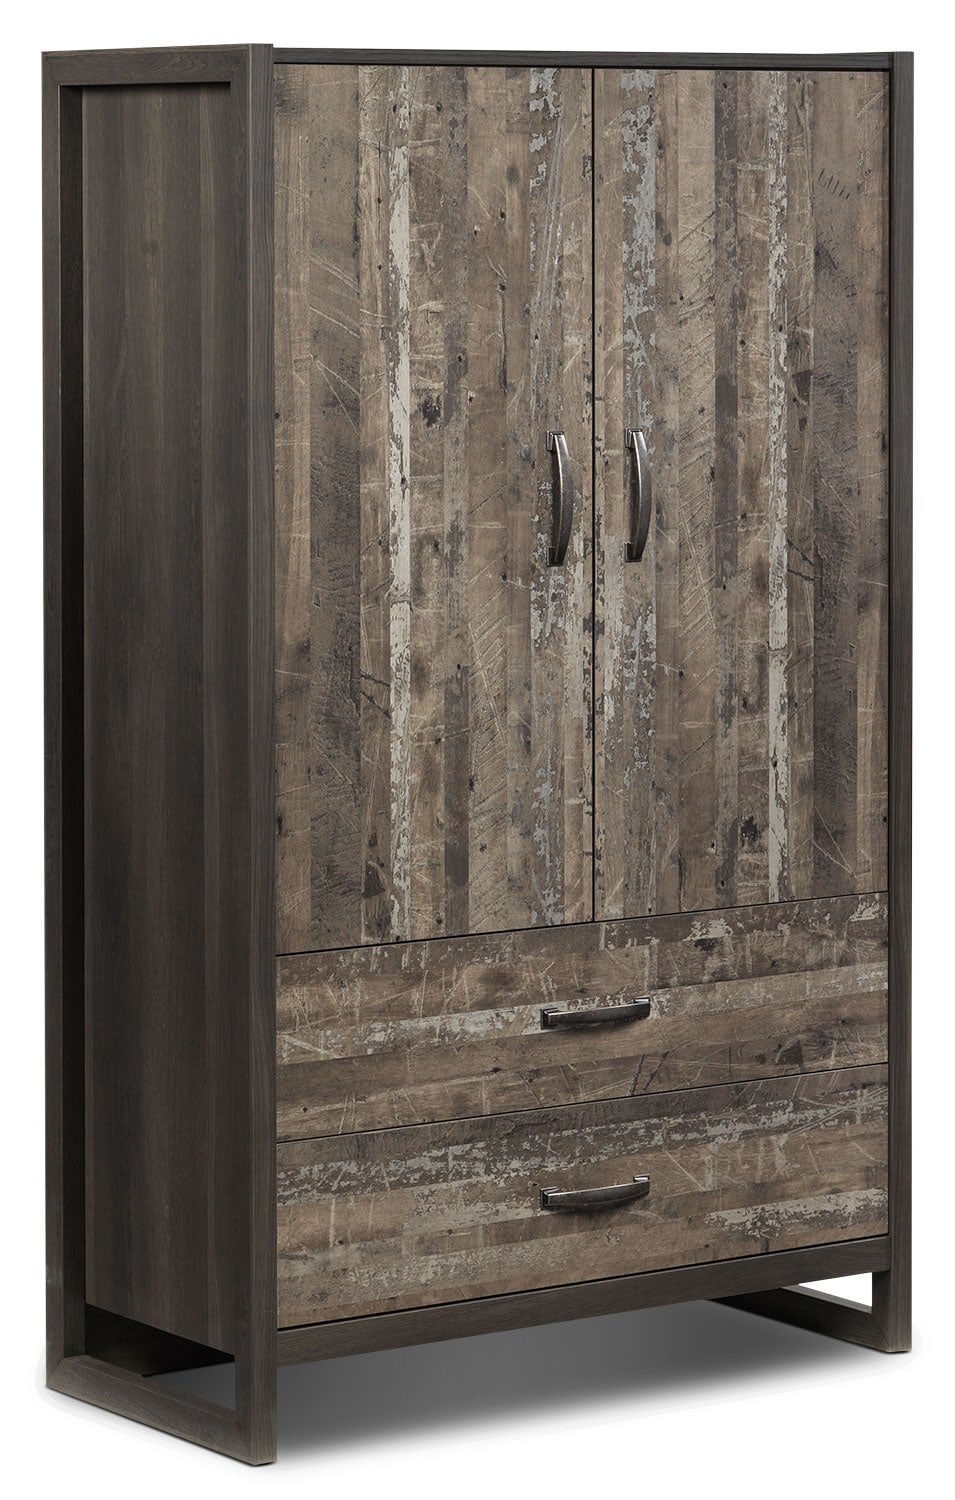 Bedroom Furniture - Hudson Armoire - Rustic Brown